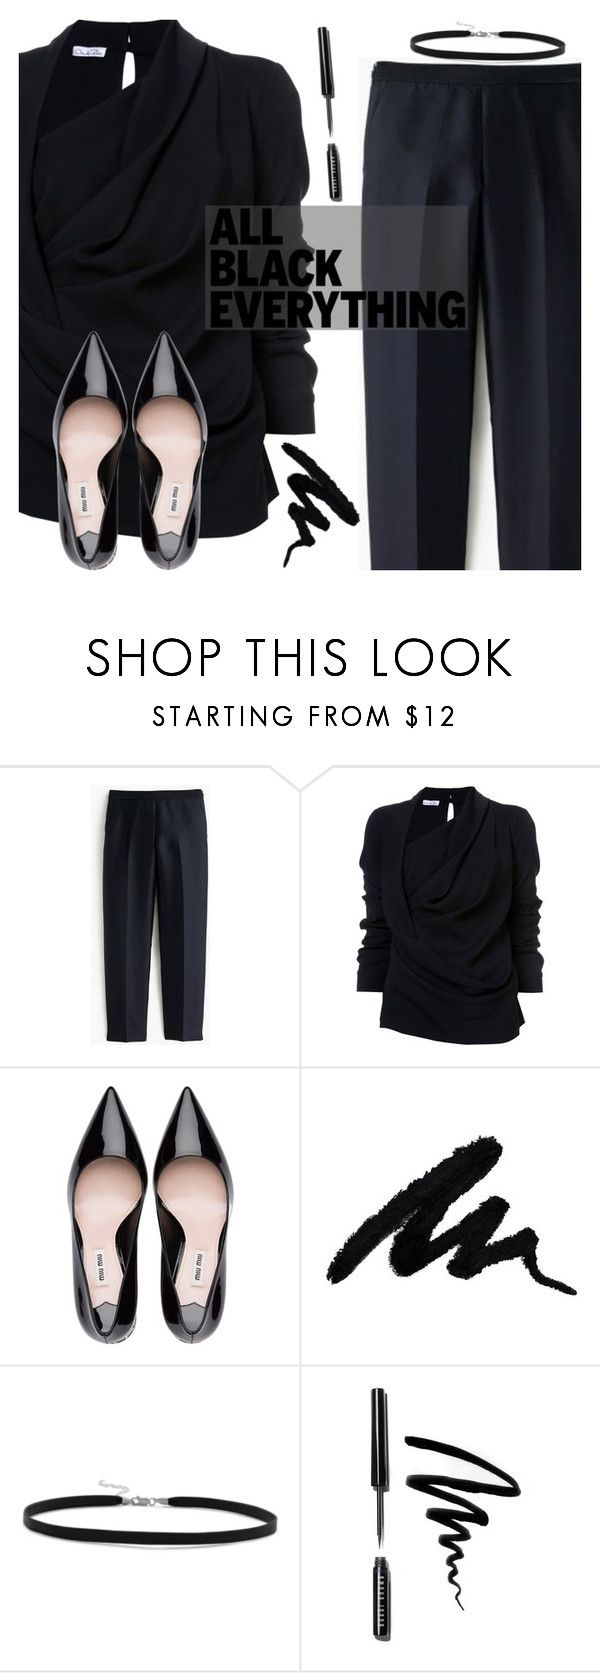 """""""Mission Monochrome: All-Black Outfit"""" by oliverab ❤ liked on Polyvore featuring J.Crew, Oscar de la Renta, BillyTheTree, Bobbi Brown Cosmetics and allblackoutfit"""